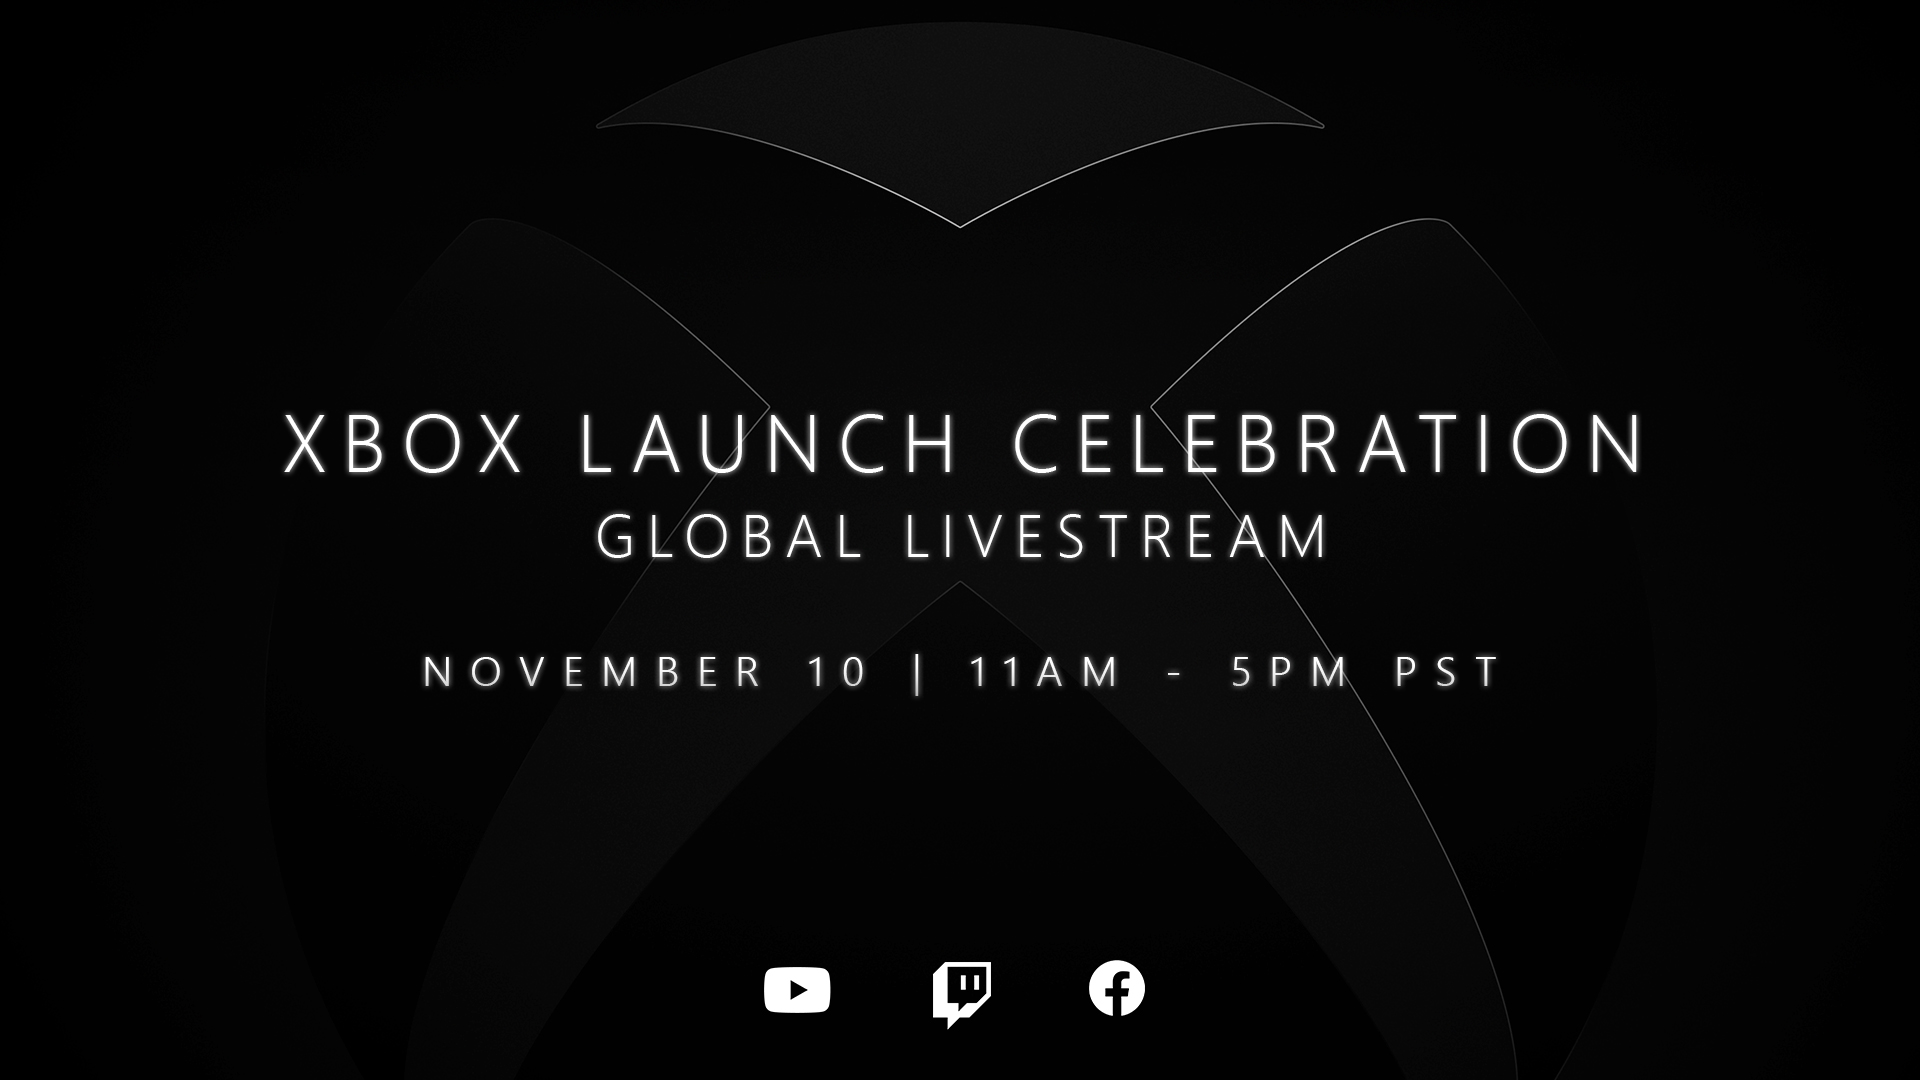 Xbox Launch Celebration Hero Image